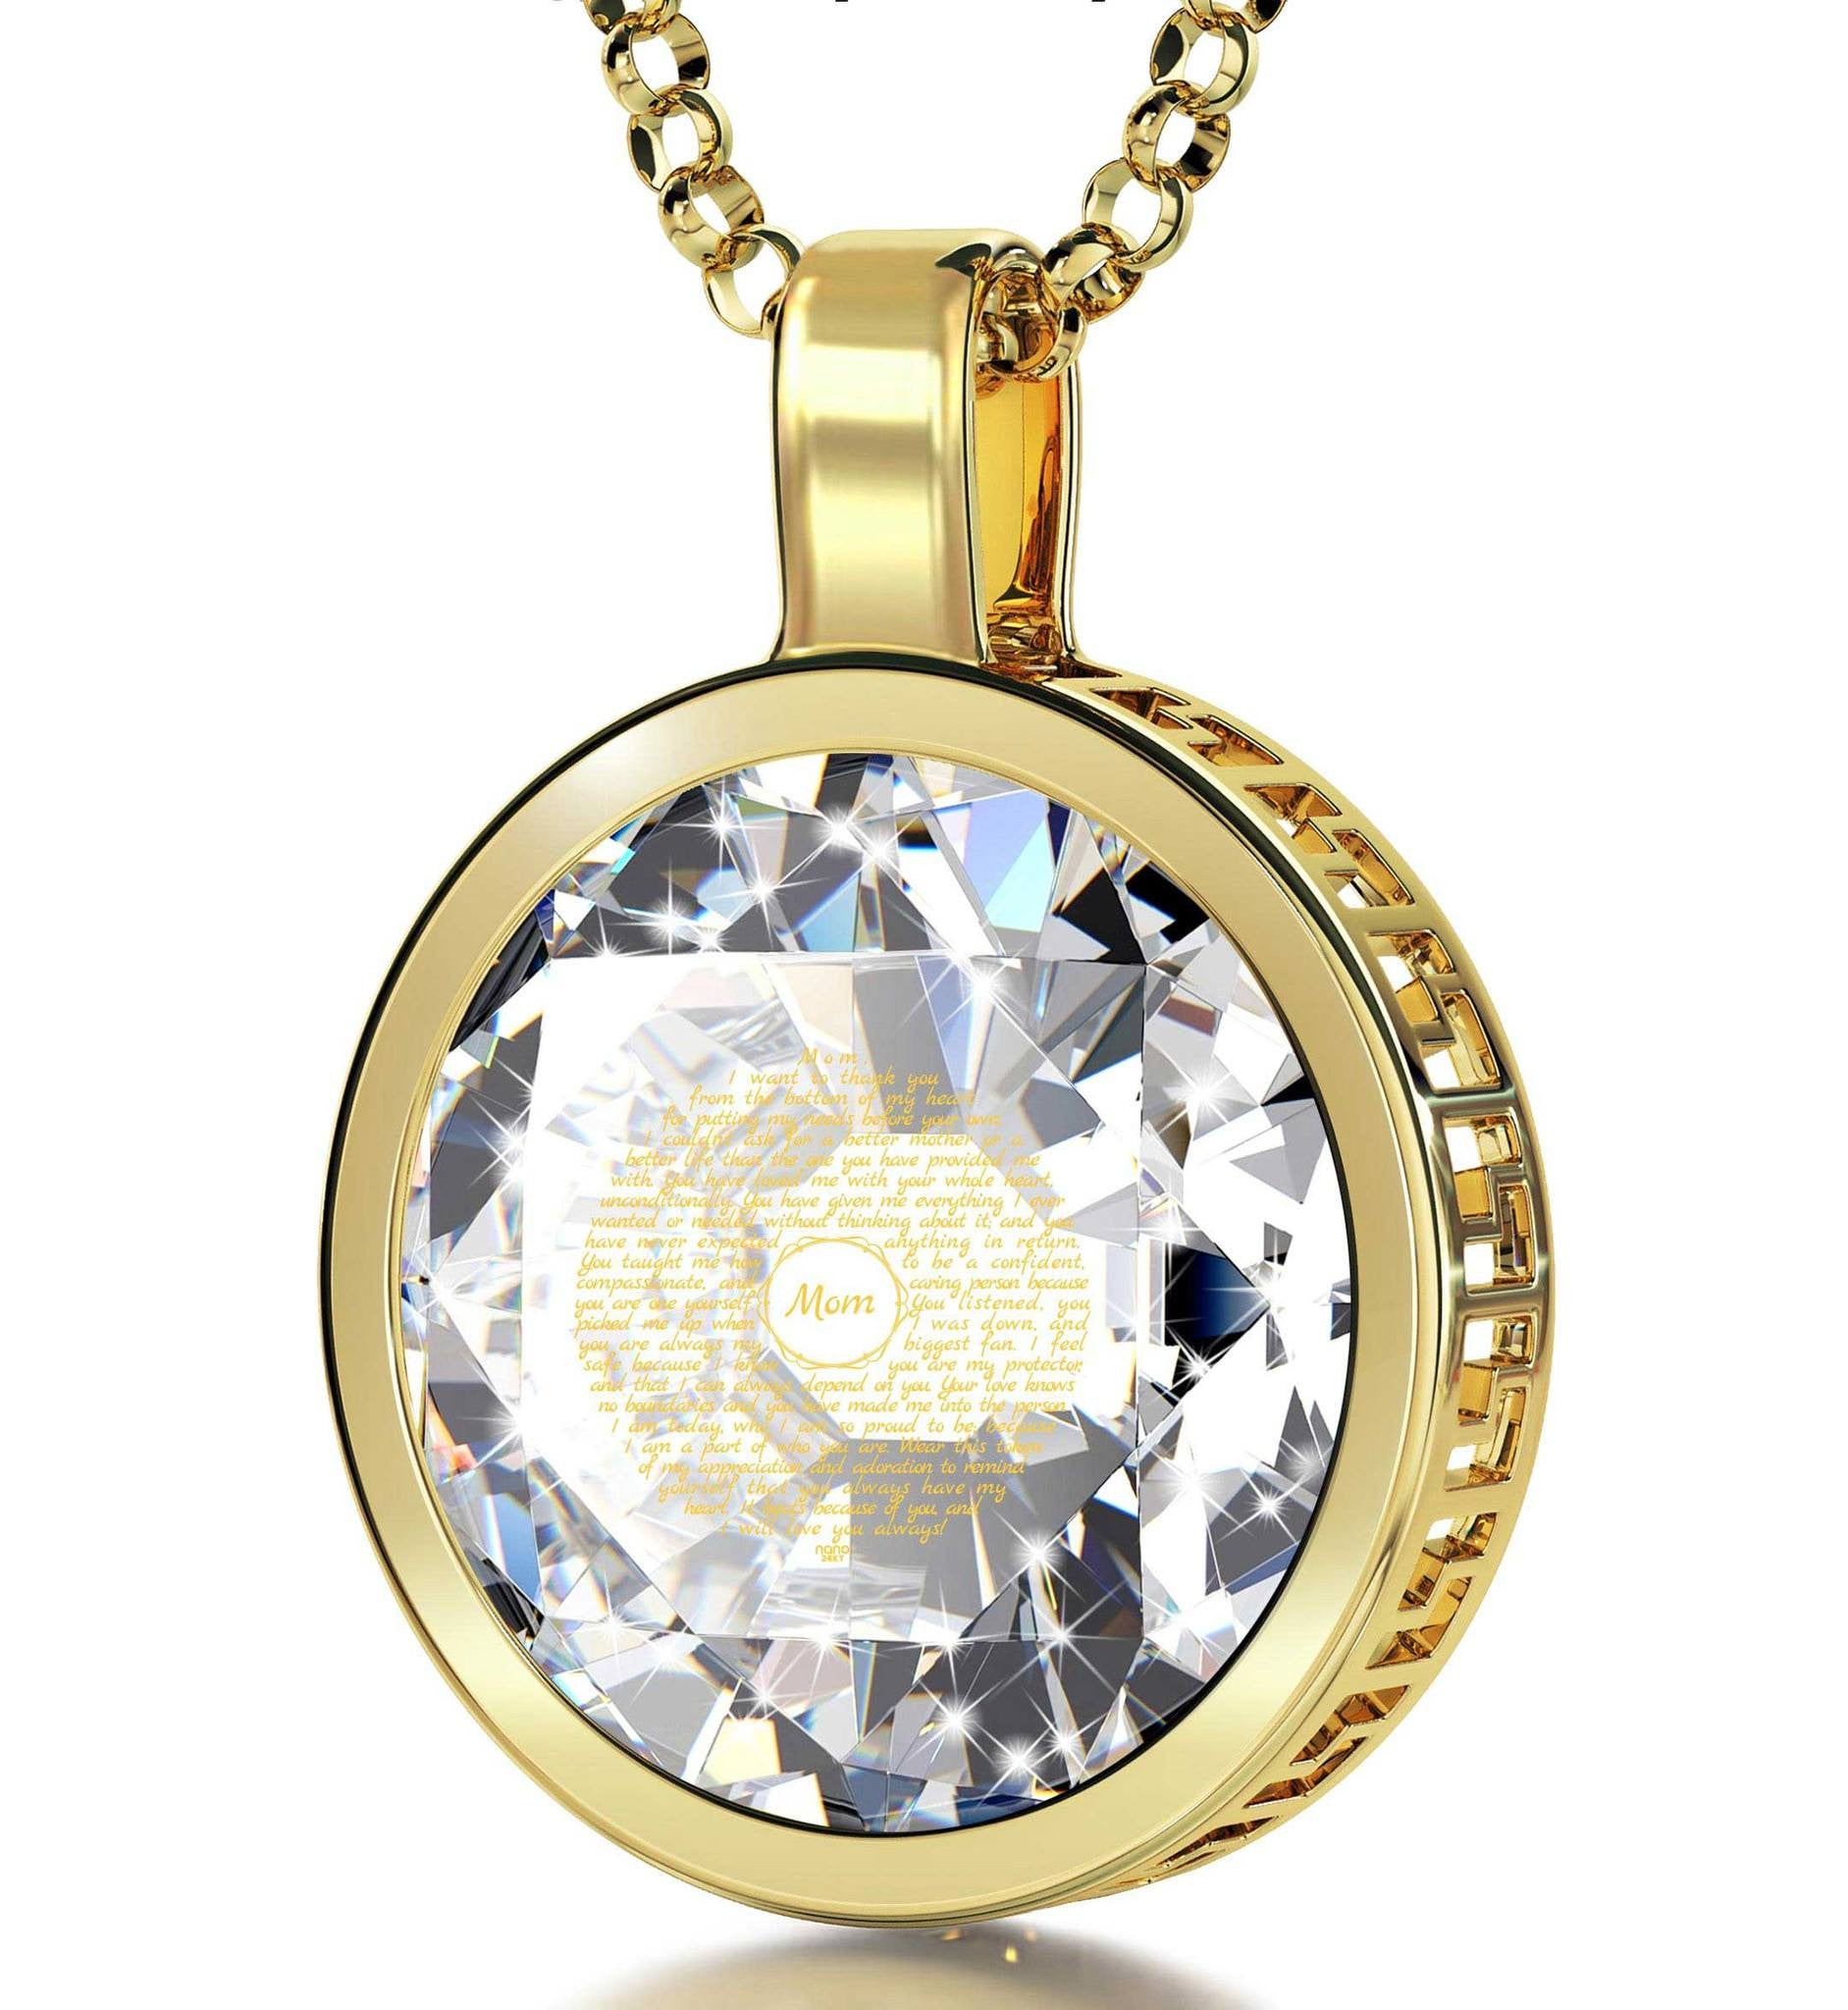 Presents for Moms Birthday, Gold Filled Engraved Necklaces with Crystal Stone, Mother Daughter Jewelry, by Nano